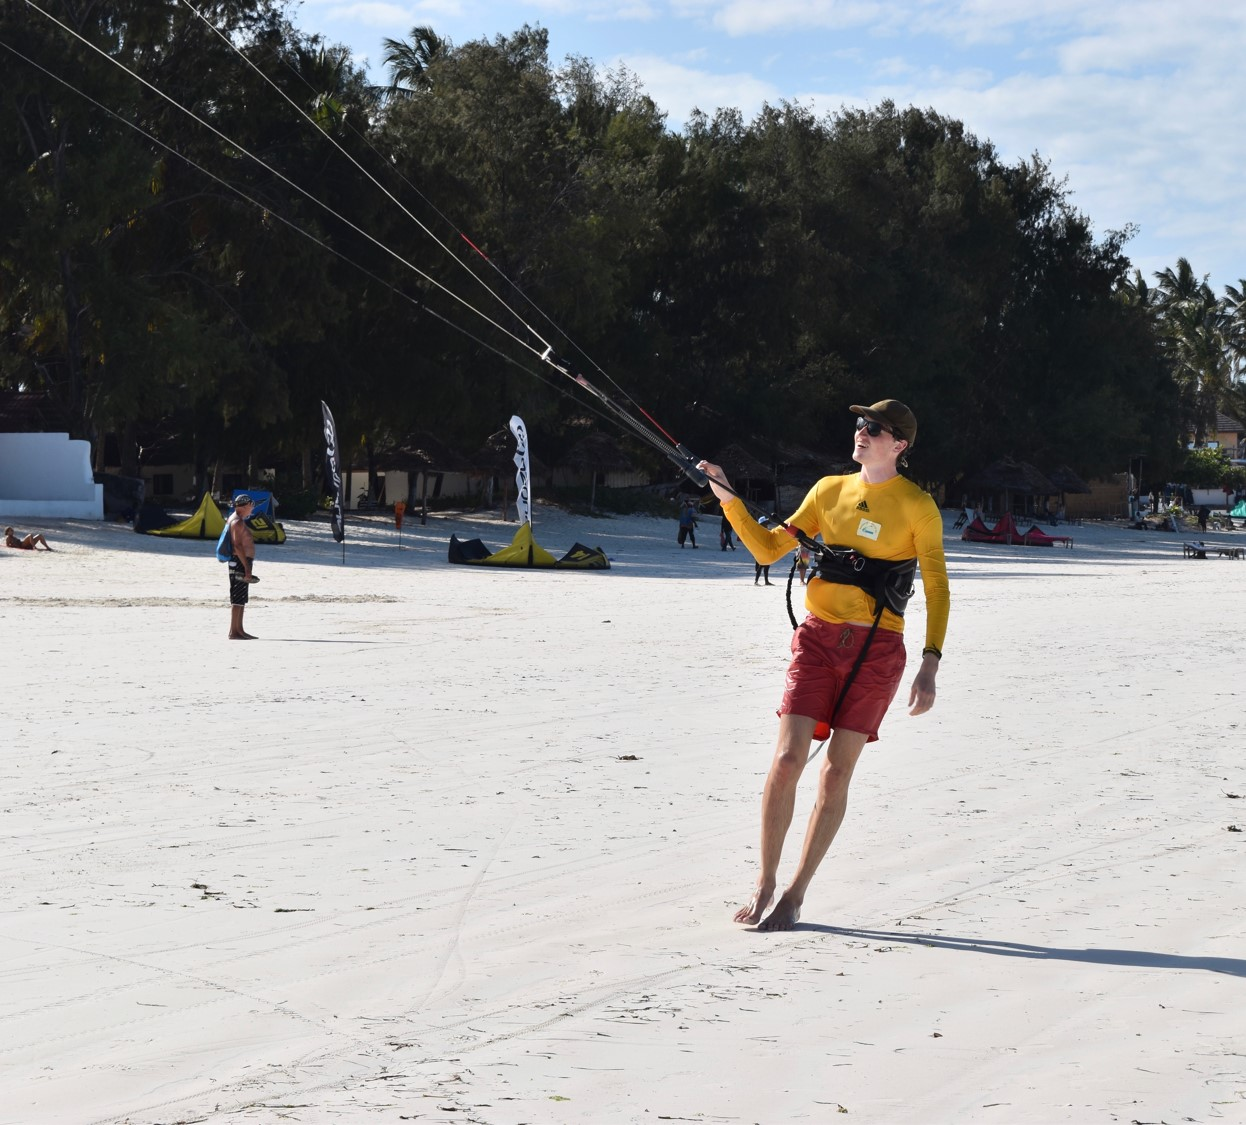 Some RnR in the form of Kitesurfing in Paje, Zanzibar